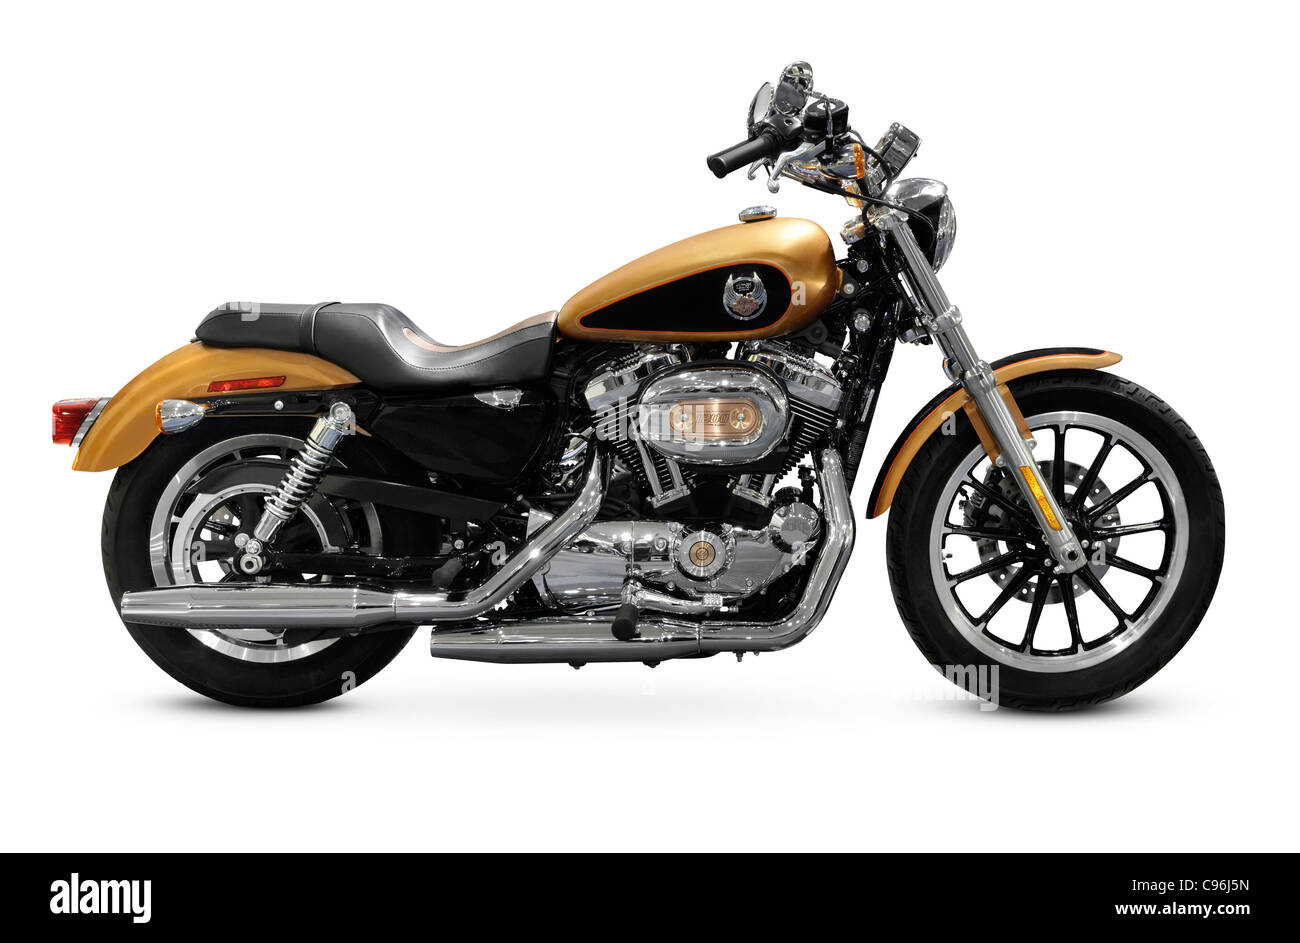 2008 Harley-Davidson 105th Anniversary Sportster Custom motorcycle. Isolated on white background. - Stock Image